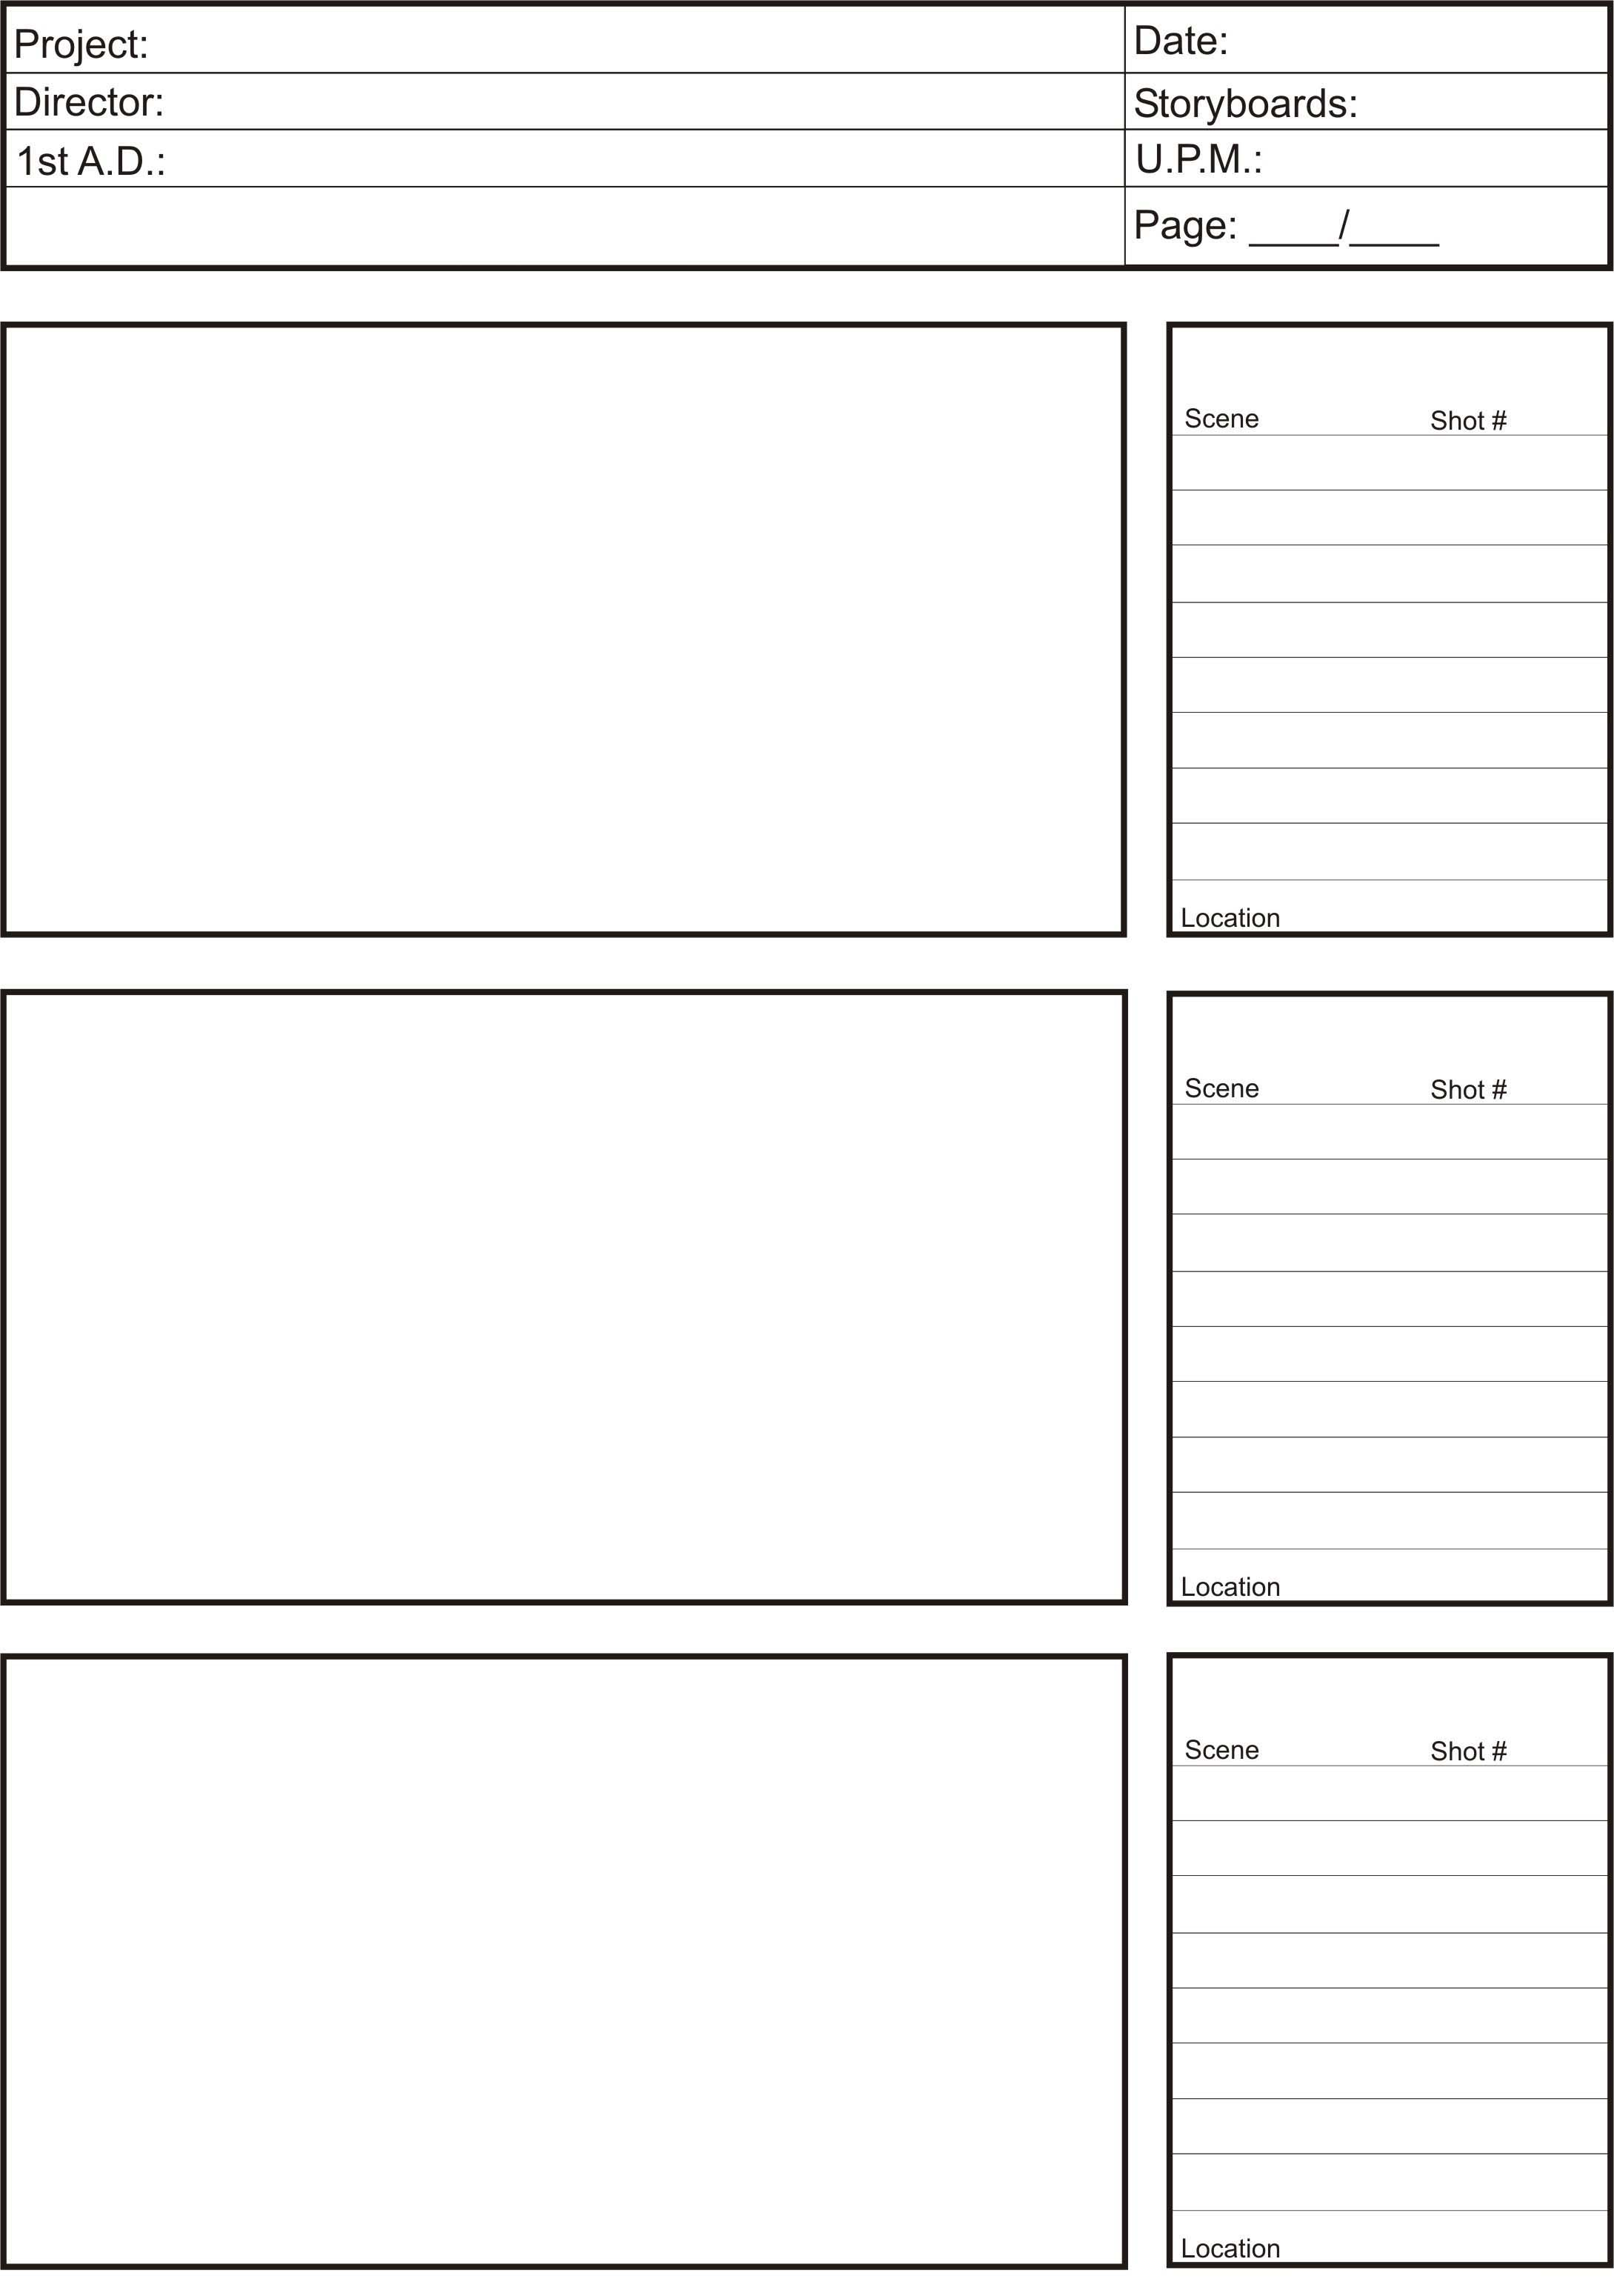 Storyboards Lm